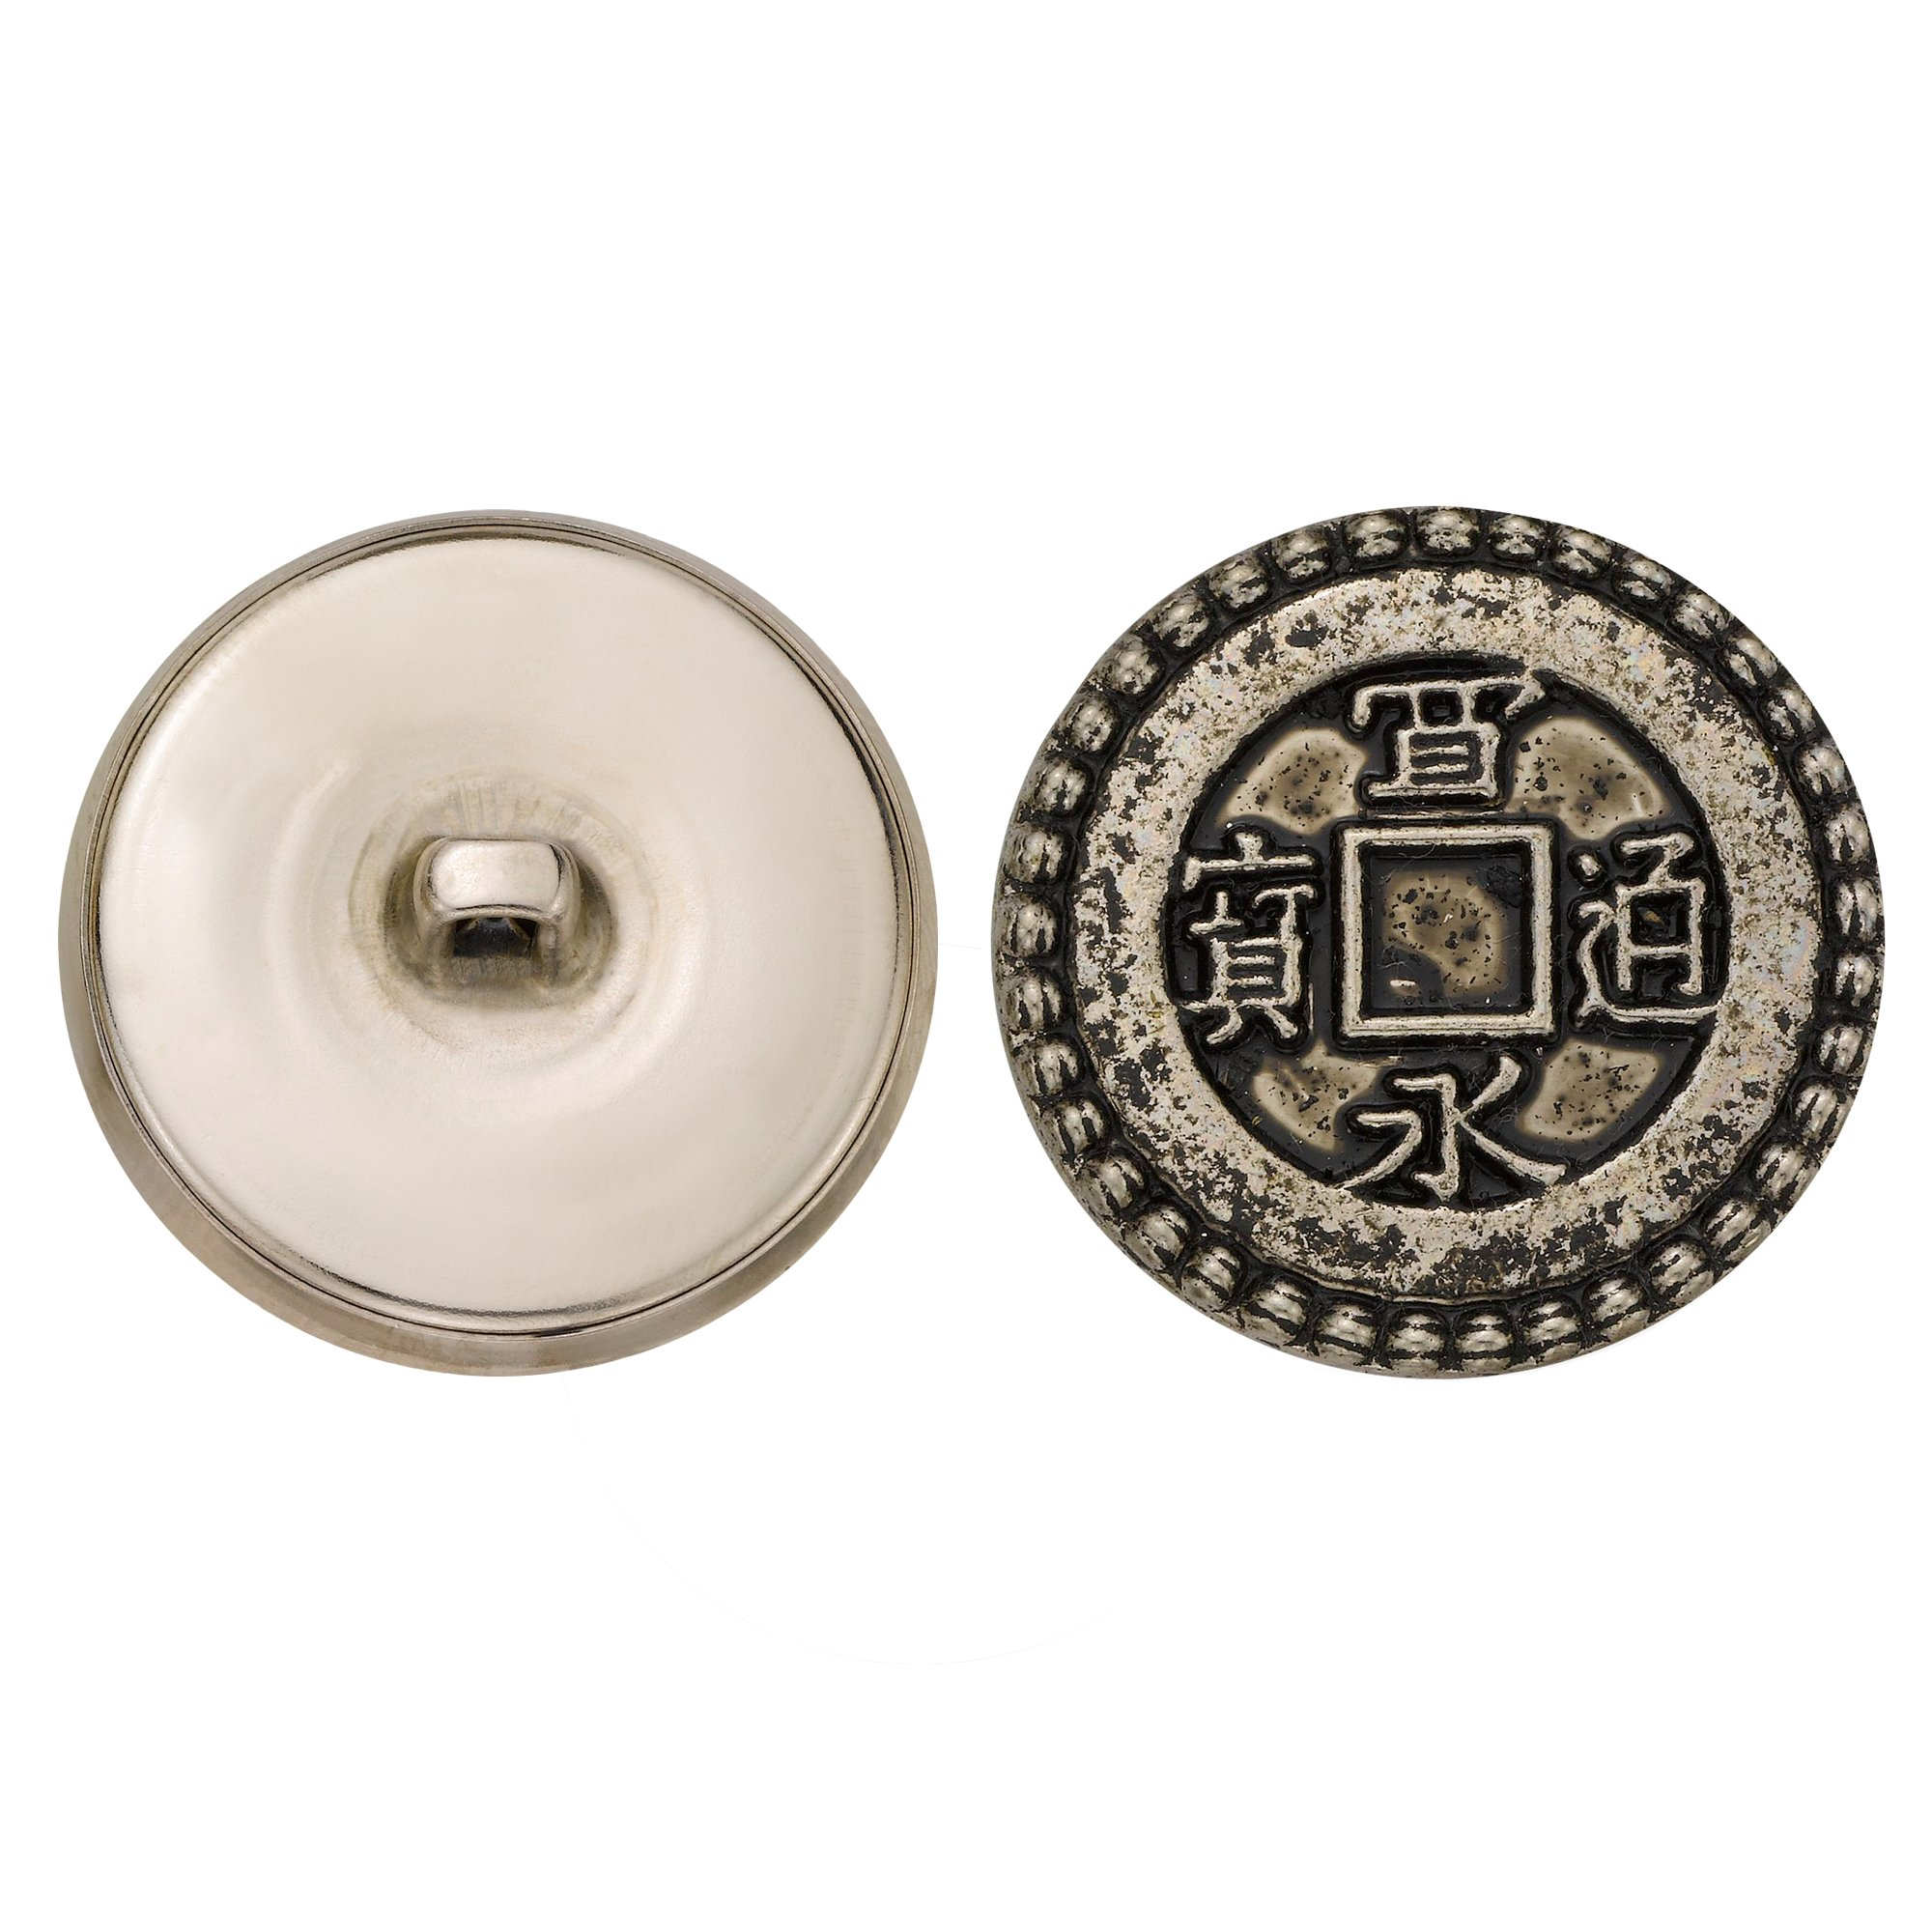 Size 30 Ligne 36-Pack C/&C Metal Products Corp Nickel C/&C Metal Products 5268 Crest Metal Button